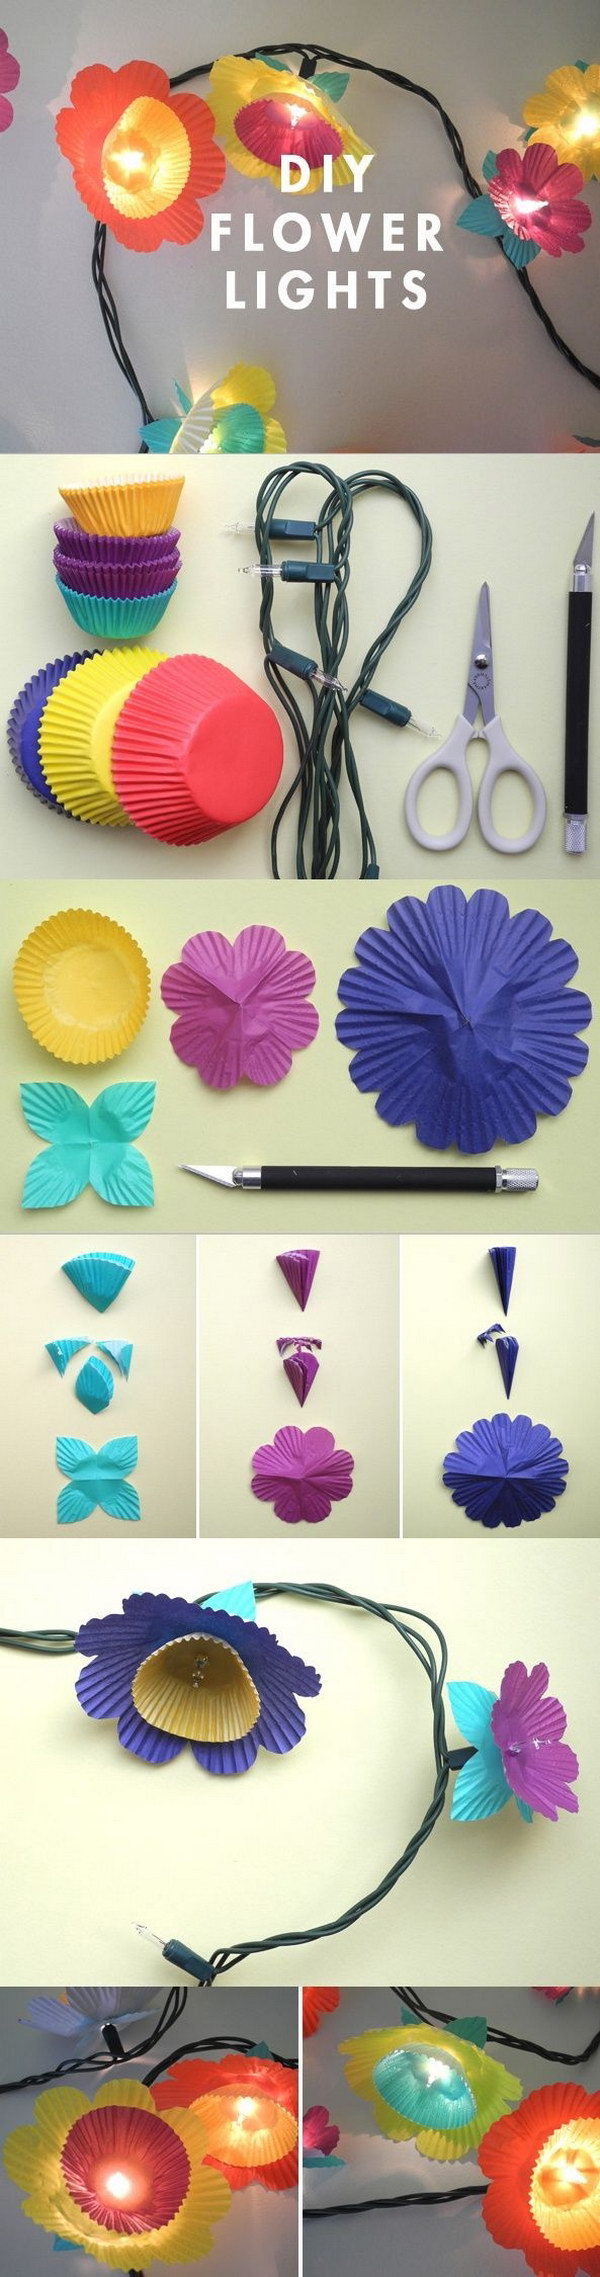 DIY Flower Lights.